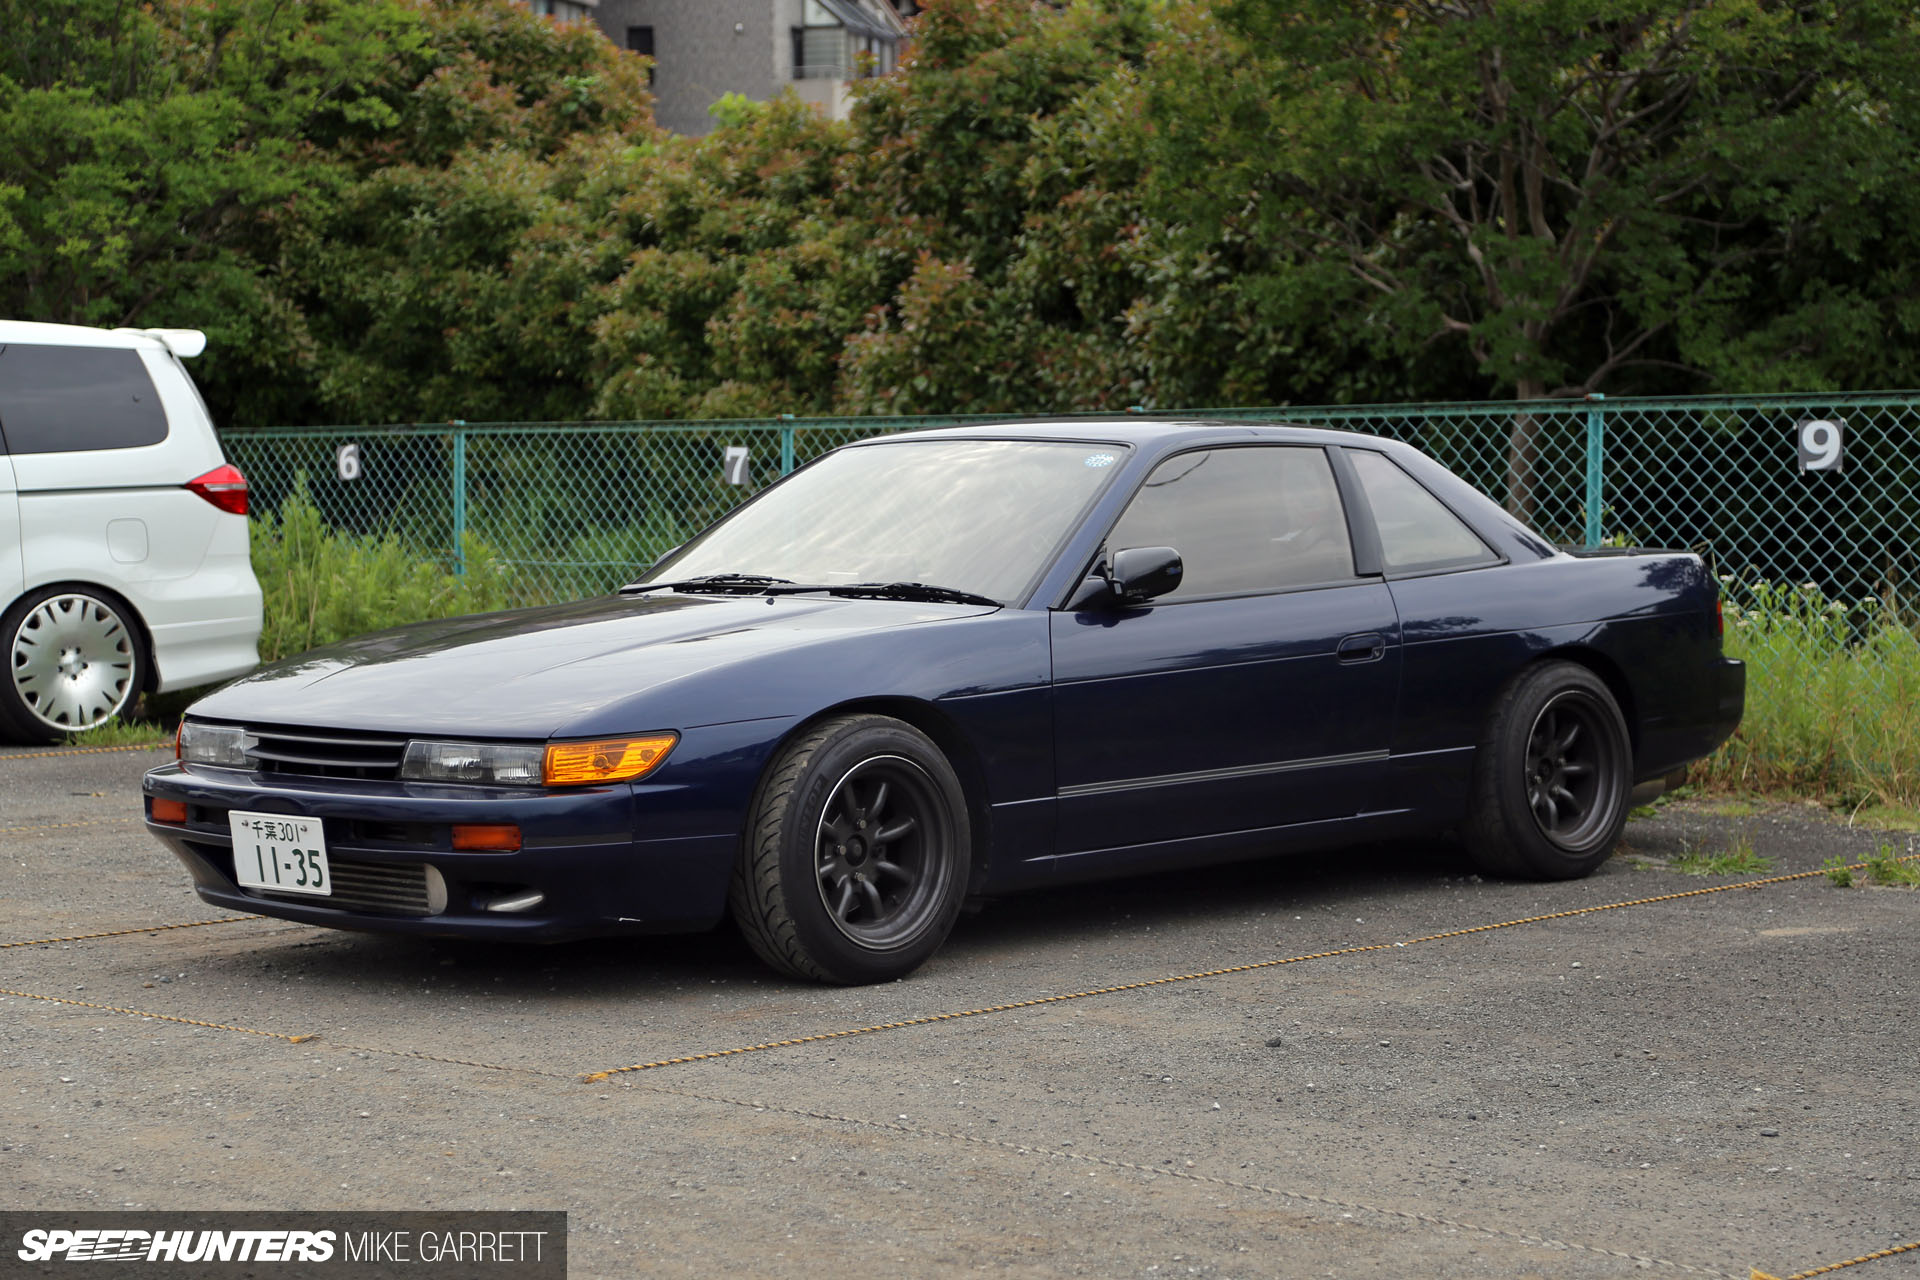 Endangered Species The Simple Amp Clean S13 Speedhunters